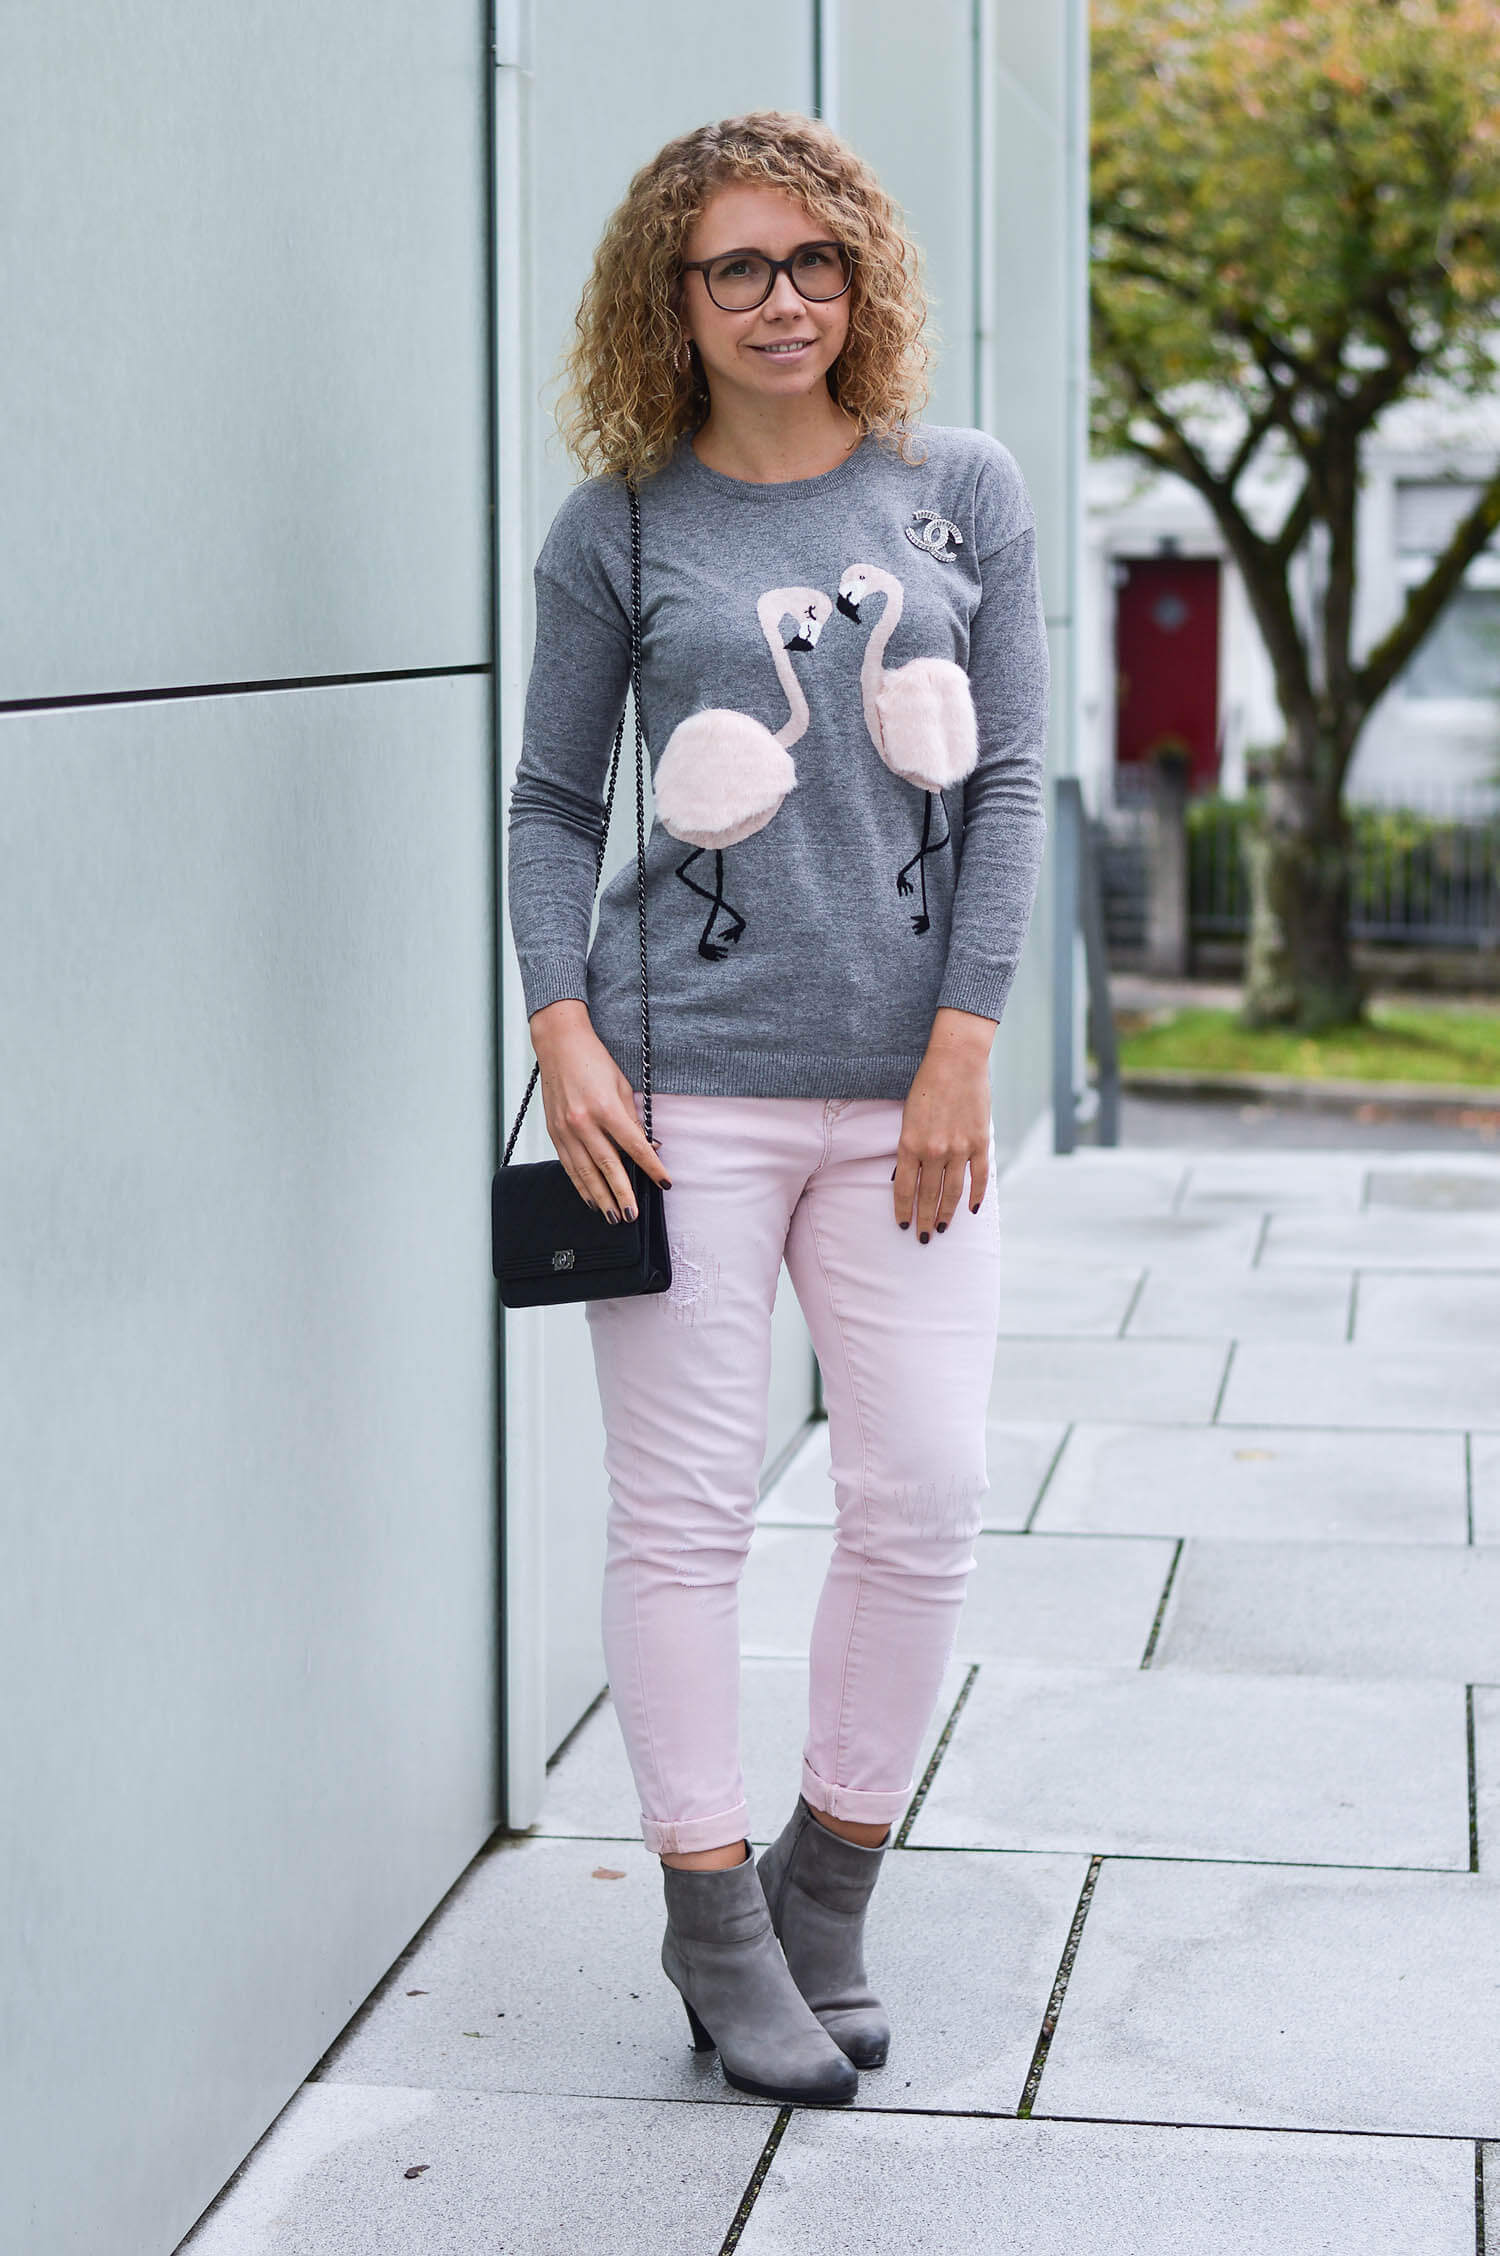 Kationette-fashionblog-nrw-Outfit-Pale-pink-and-grey-with-Flamingo-Sweater-and-Chanel-streetstyle